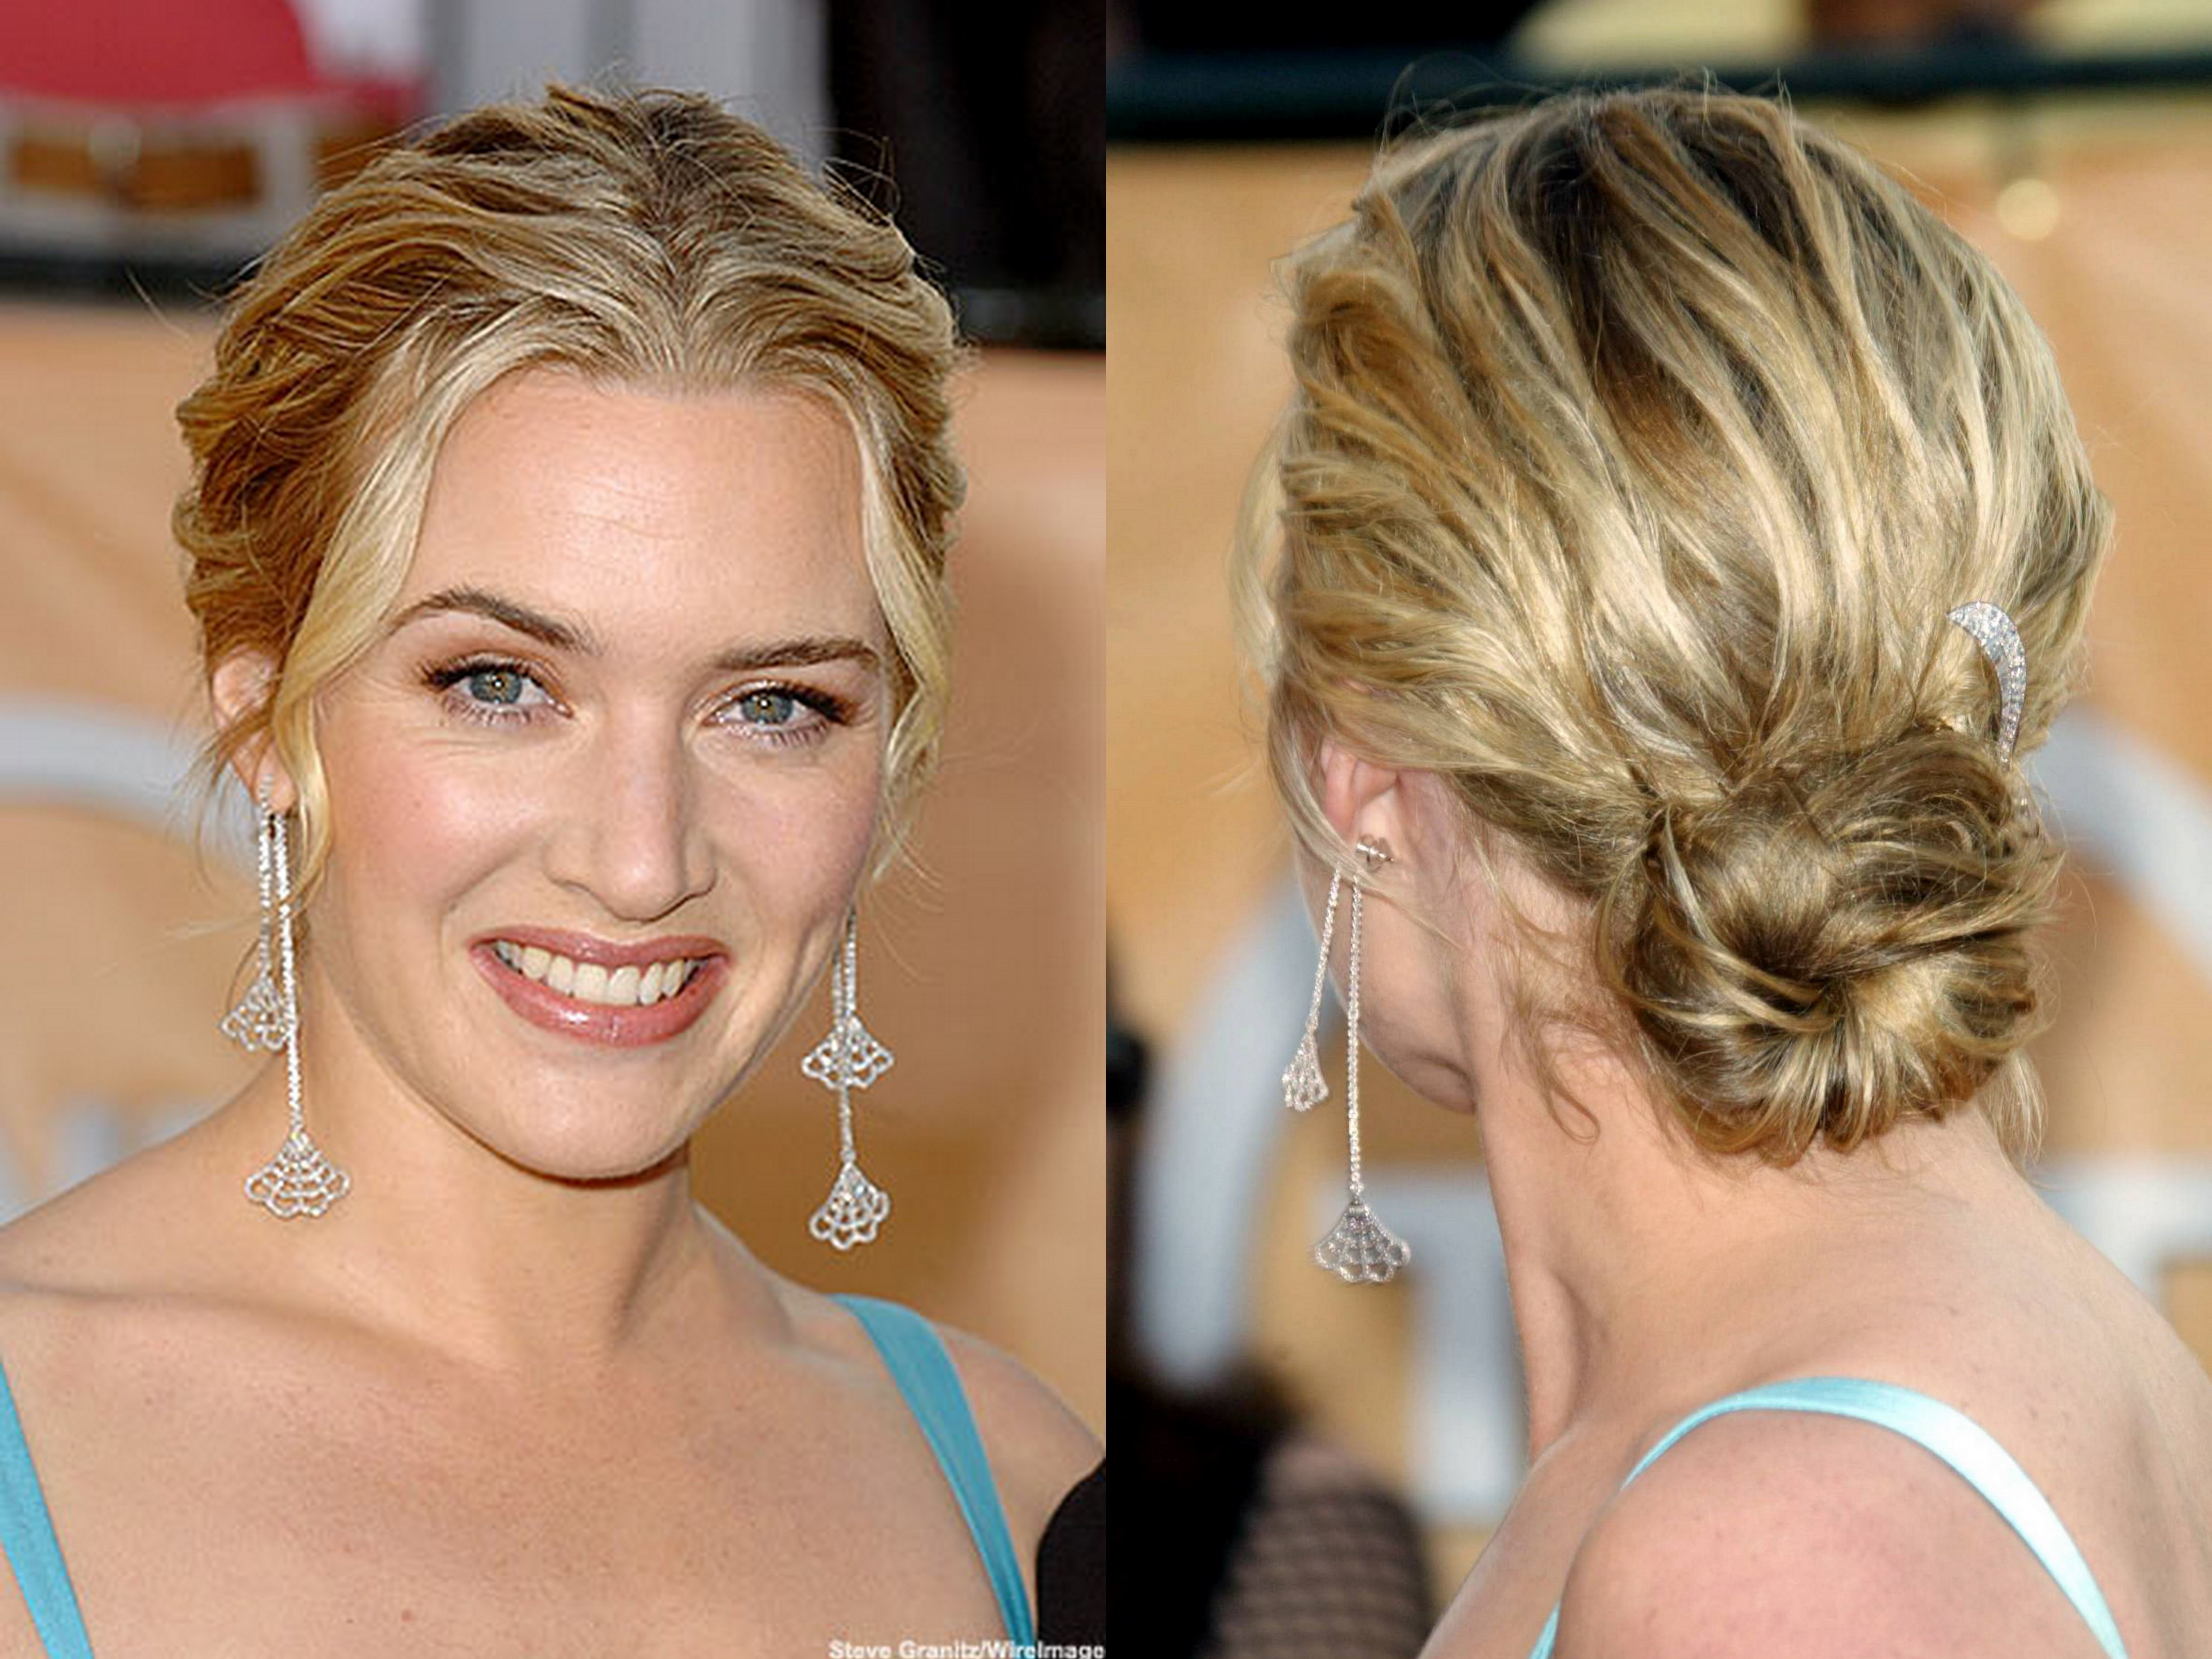 Hair Style Gallery : Kate Winslet hair style - Kate Winslet Fan Art (33212479) - Fanpop